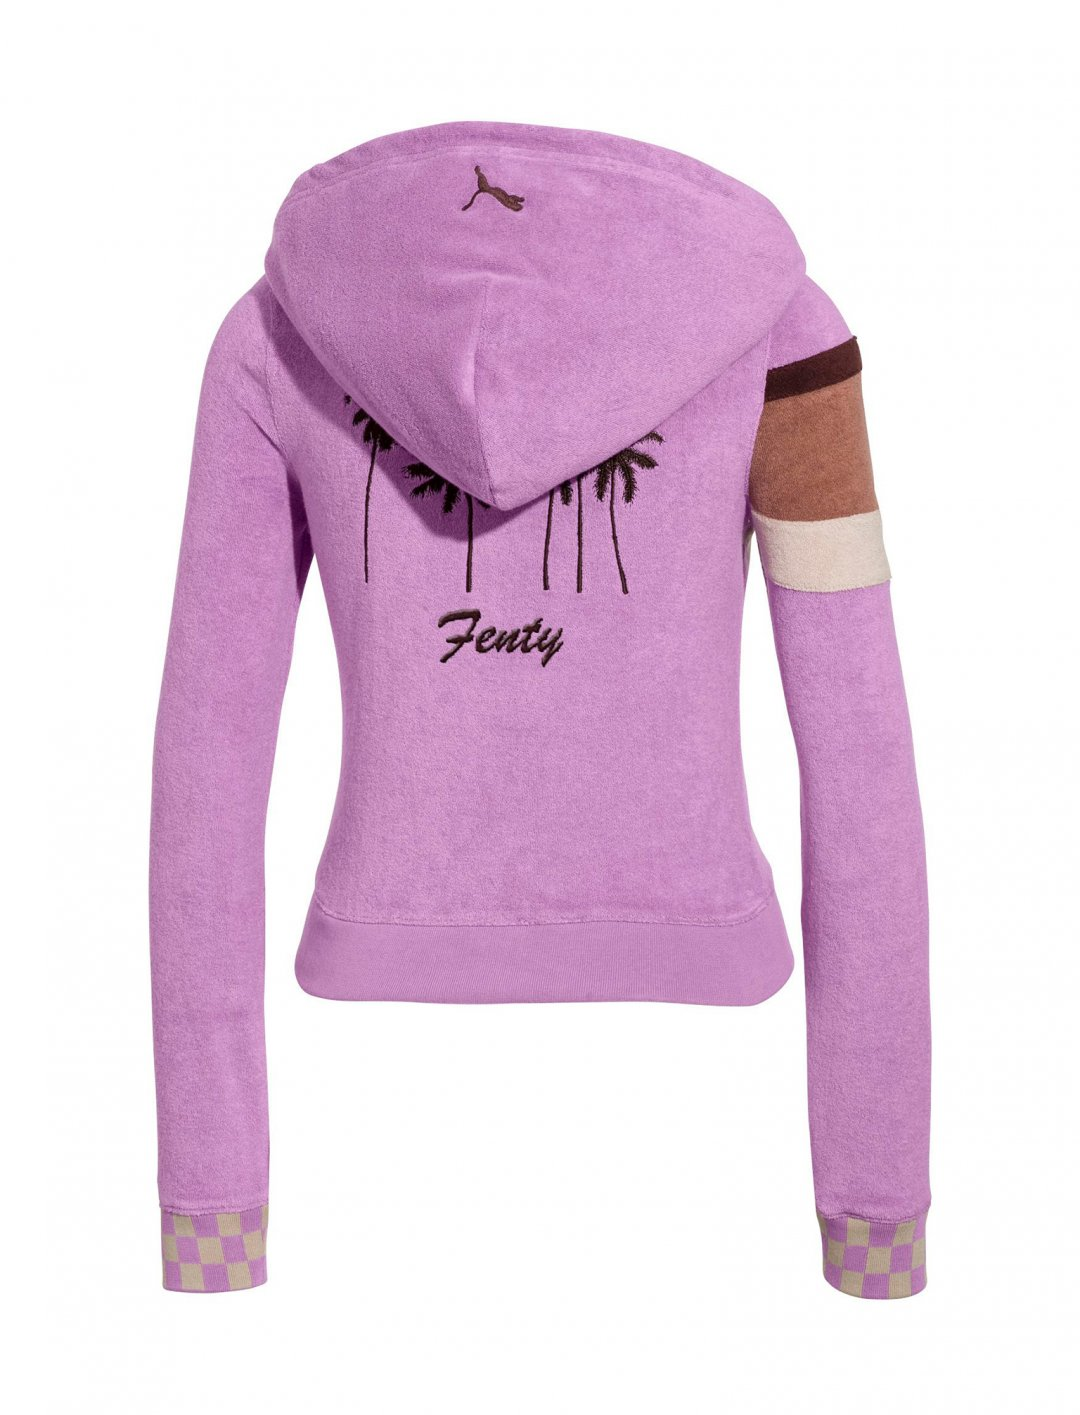 "Terrycloth Racing Jacket {""id"":5,""product_section_id"":1,""name"":""Clothing"",""order"":5} Fenty"